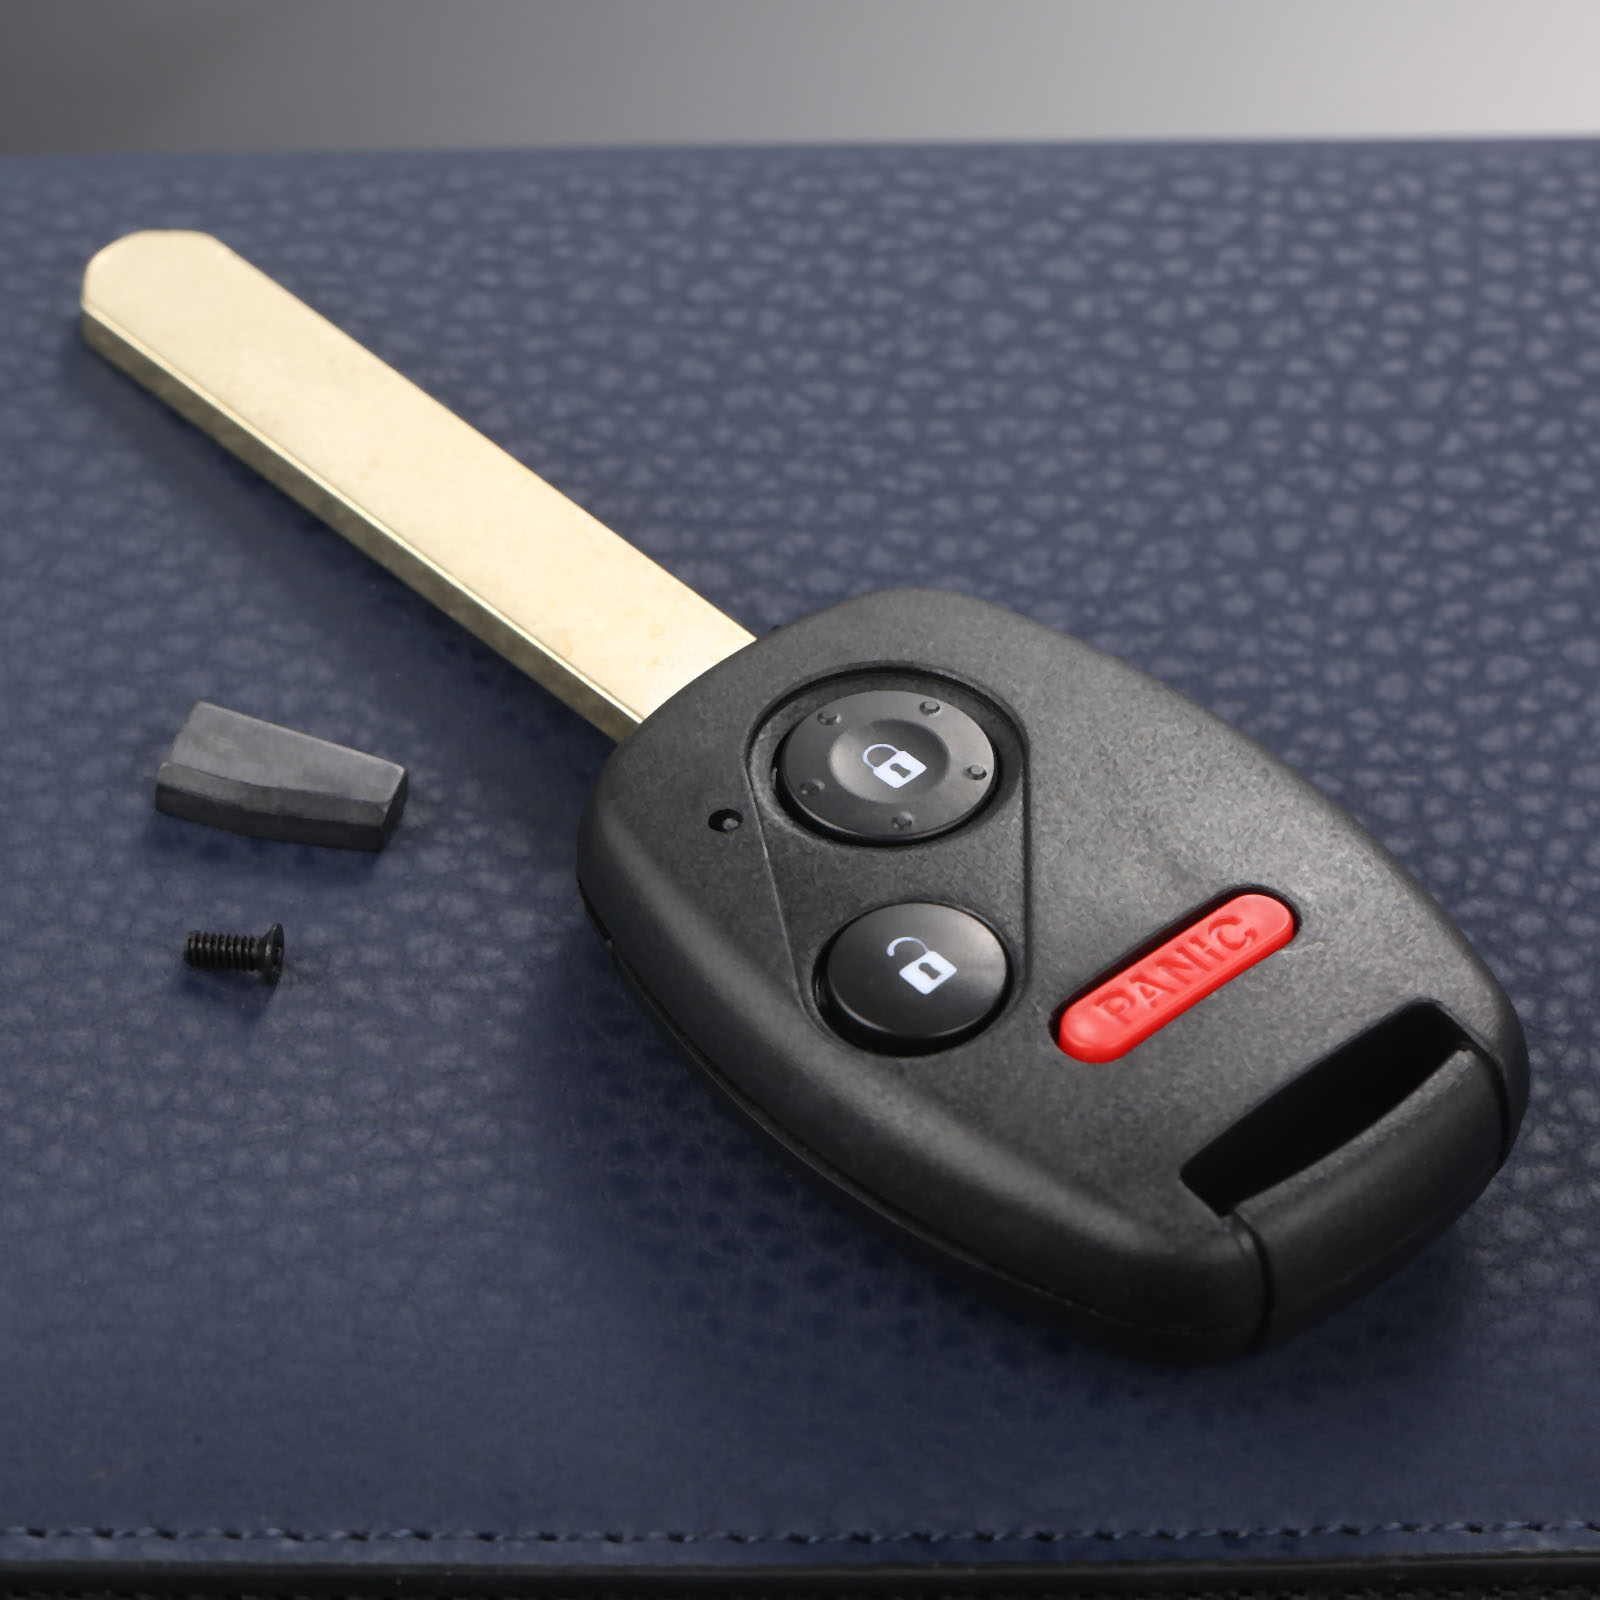 1x New Replacement Keyless Entry Remote Key Fob For Honda Fit Odyssey Ridgeline